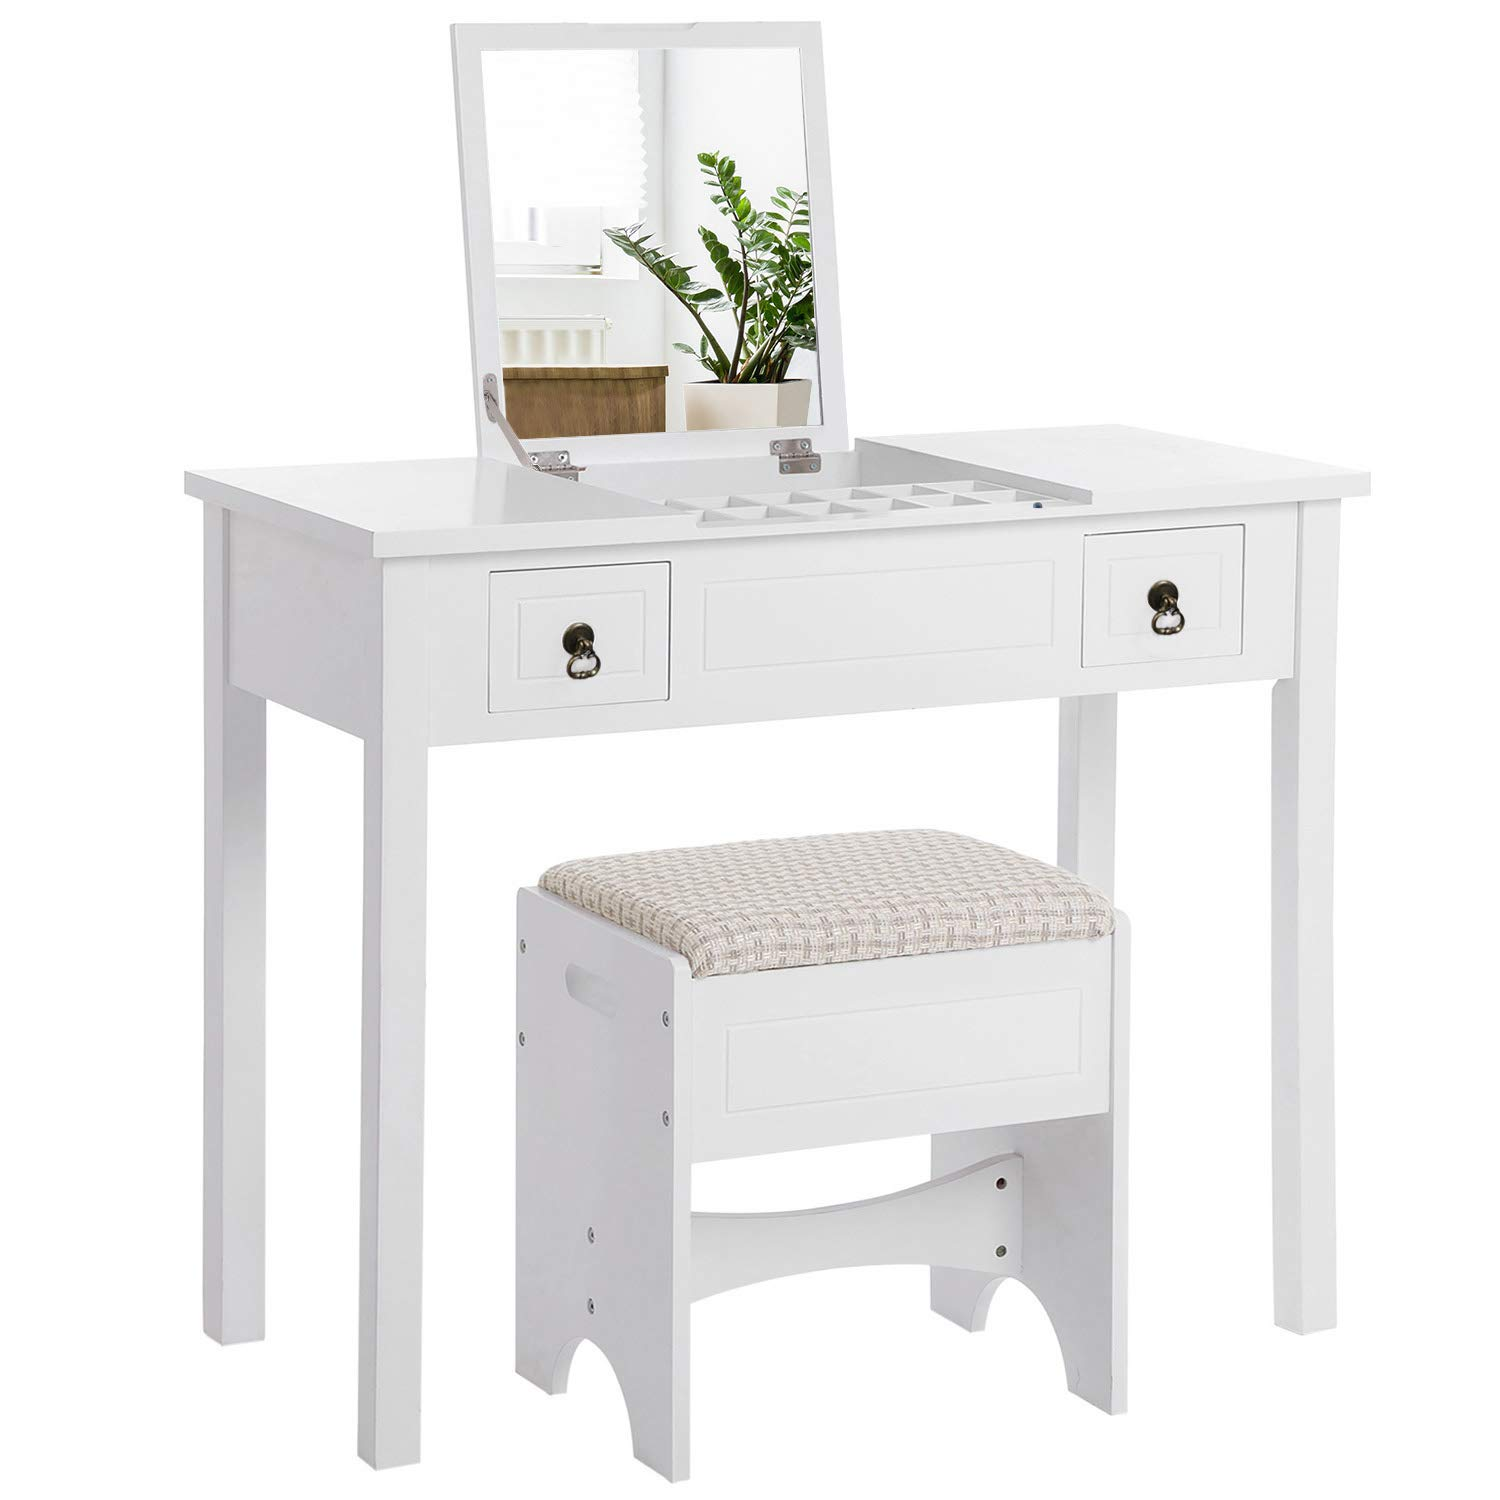 VASAGLE Vanity Set with Flip Top Mirror Makeup Dressing Table Writing Desk with 2 Drawers Cushioned Stool 3 Removable Organizers, Easy Assembly, White URDT01M by VASAGLE